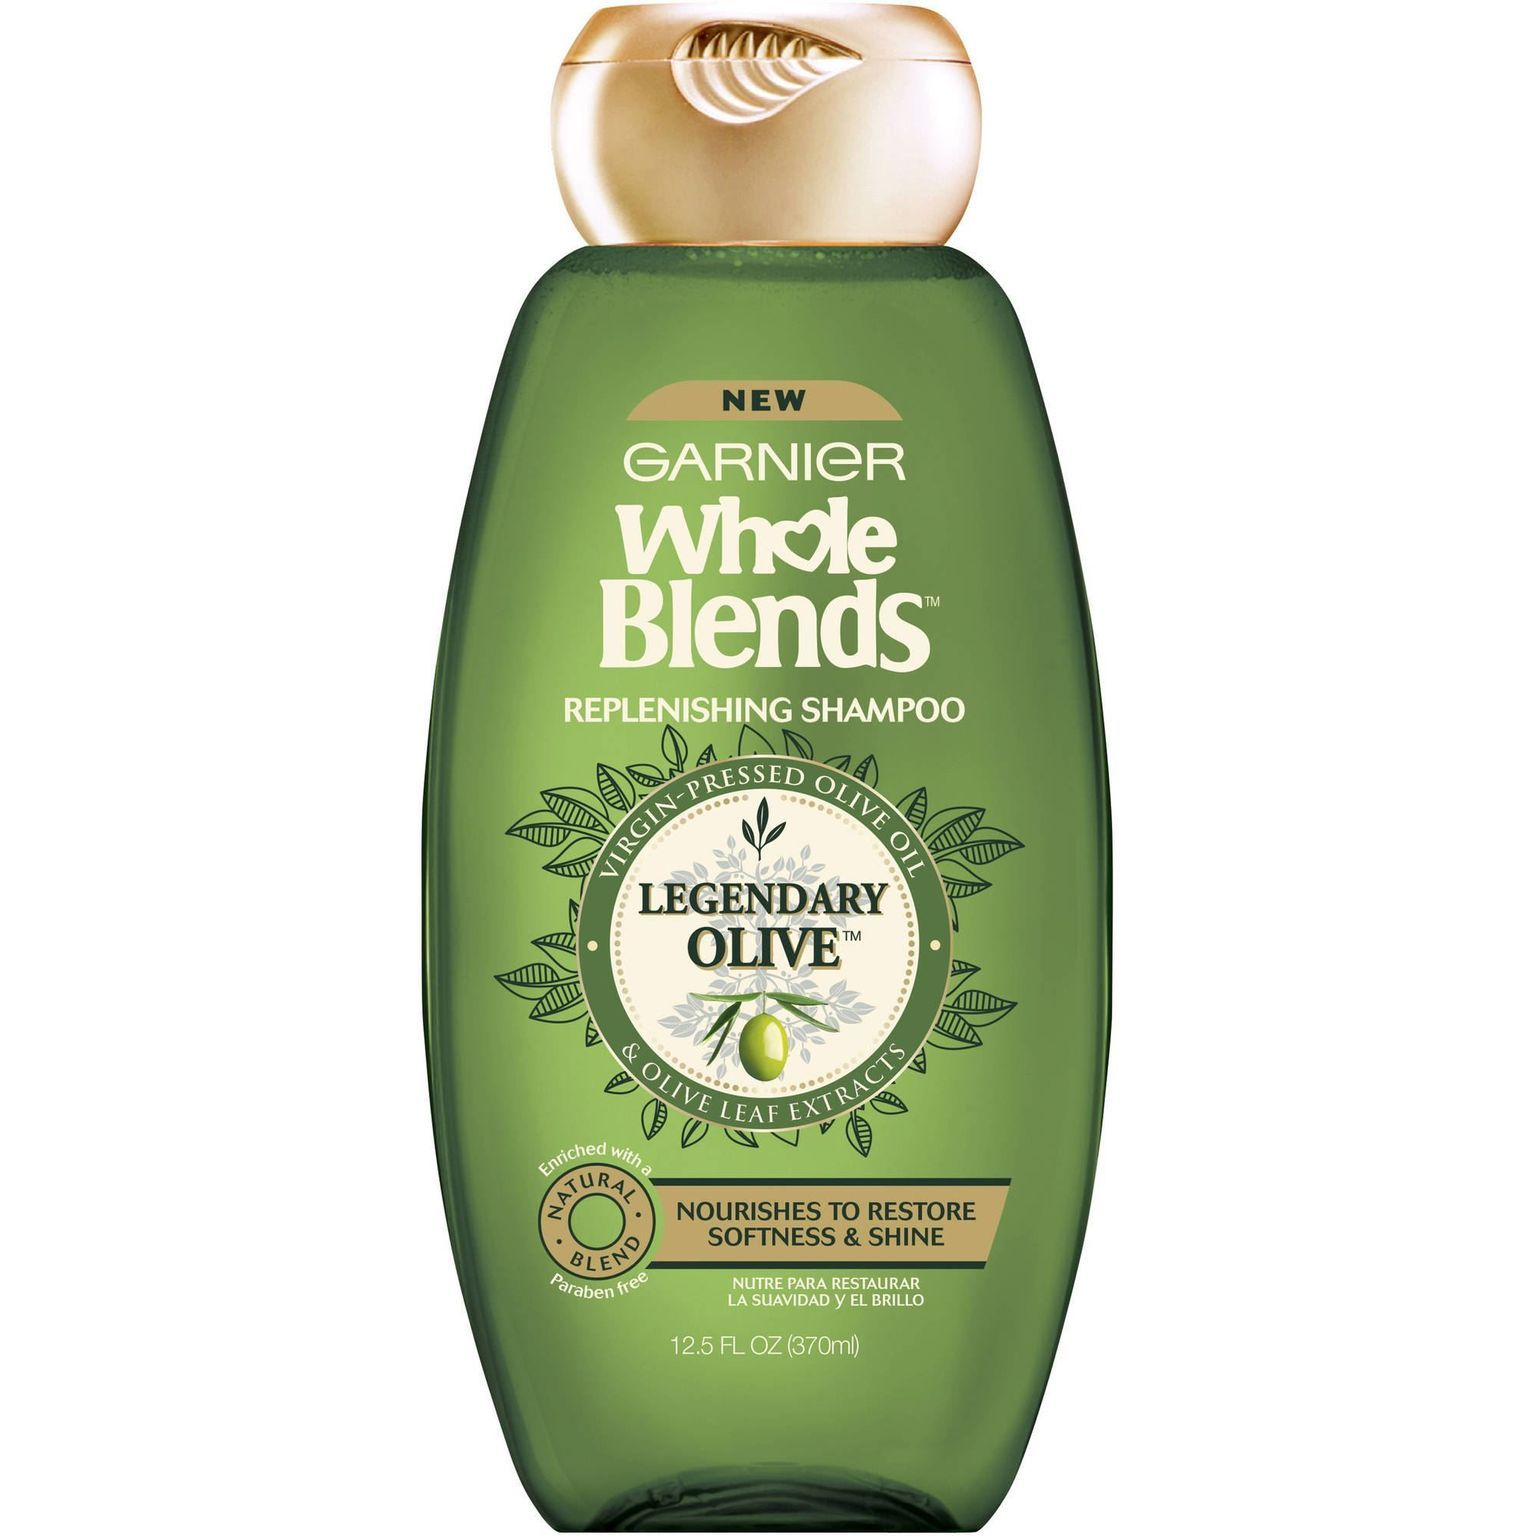 Whole Blends Replenishing Shampoo - Legendary Olive